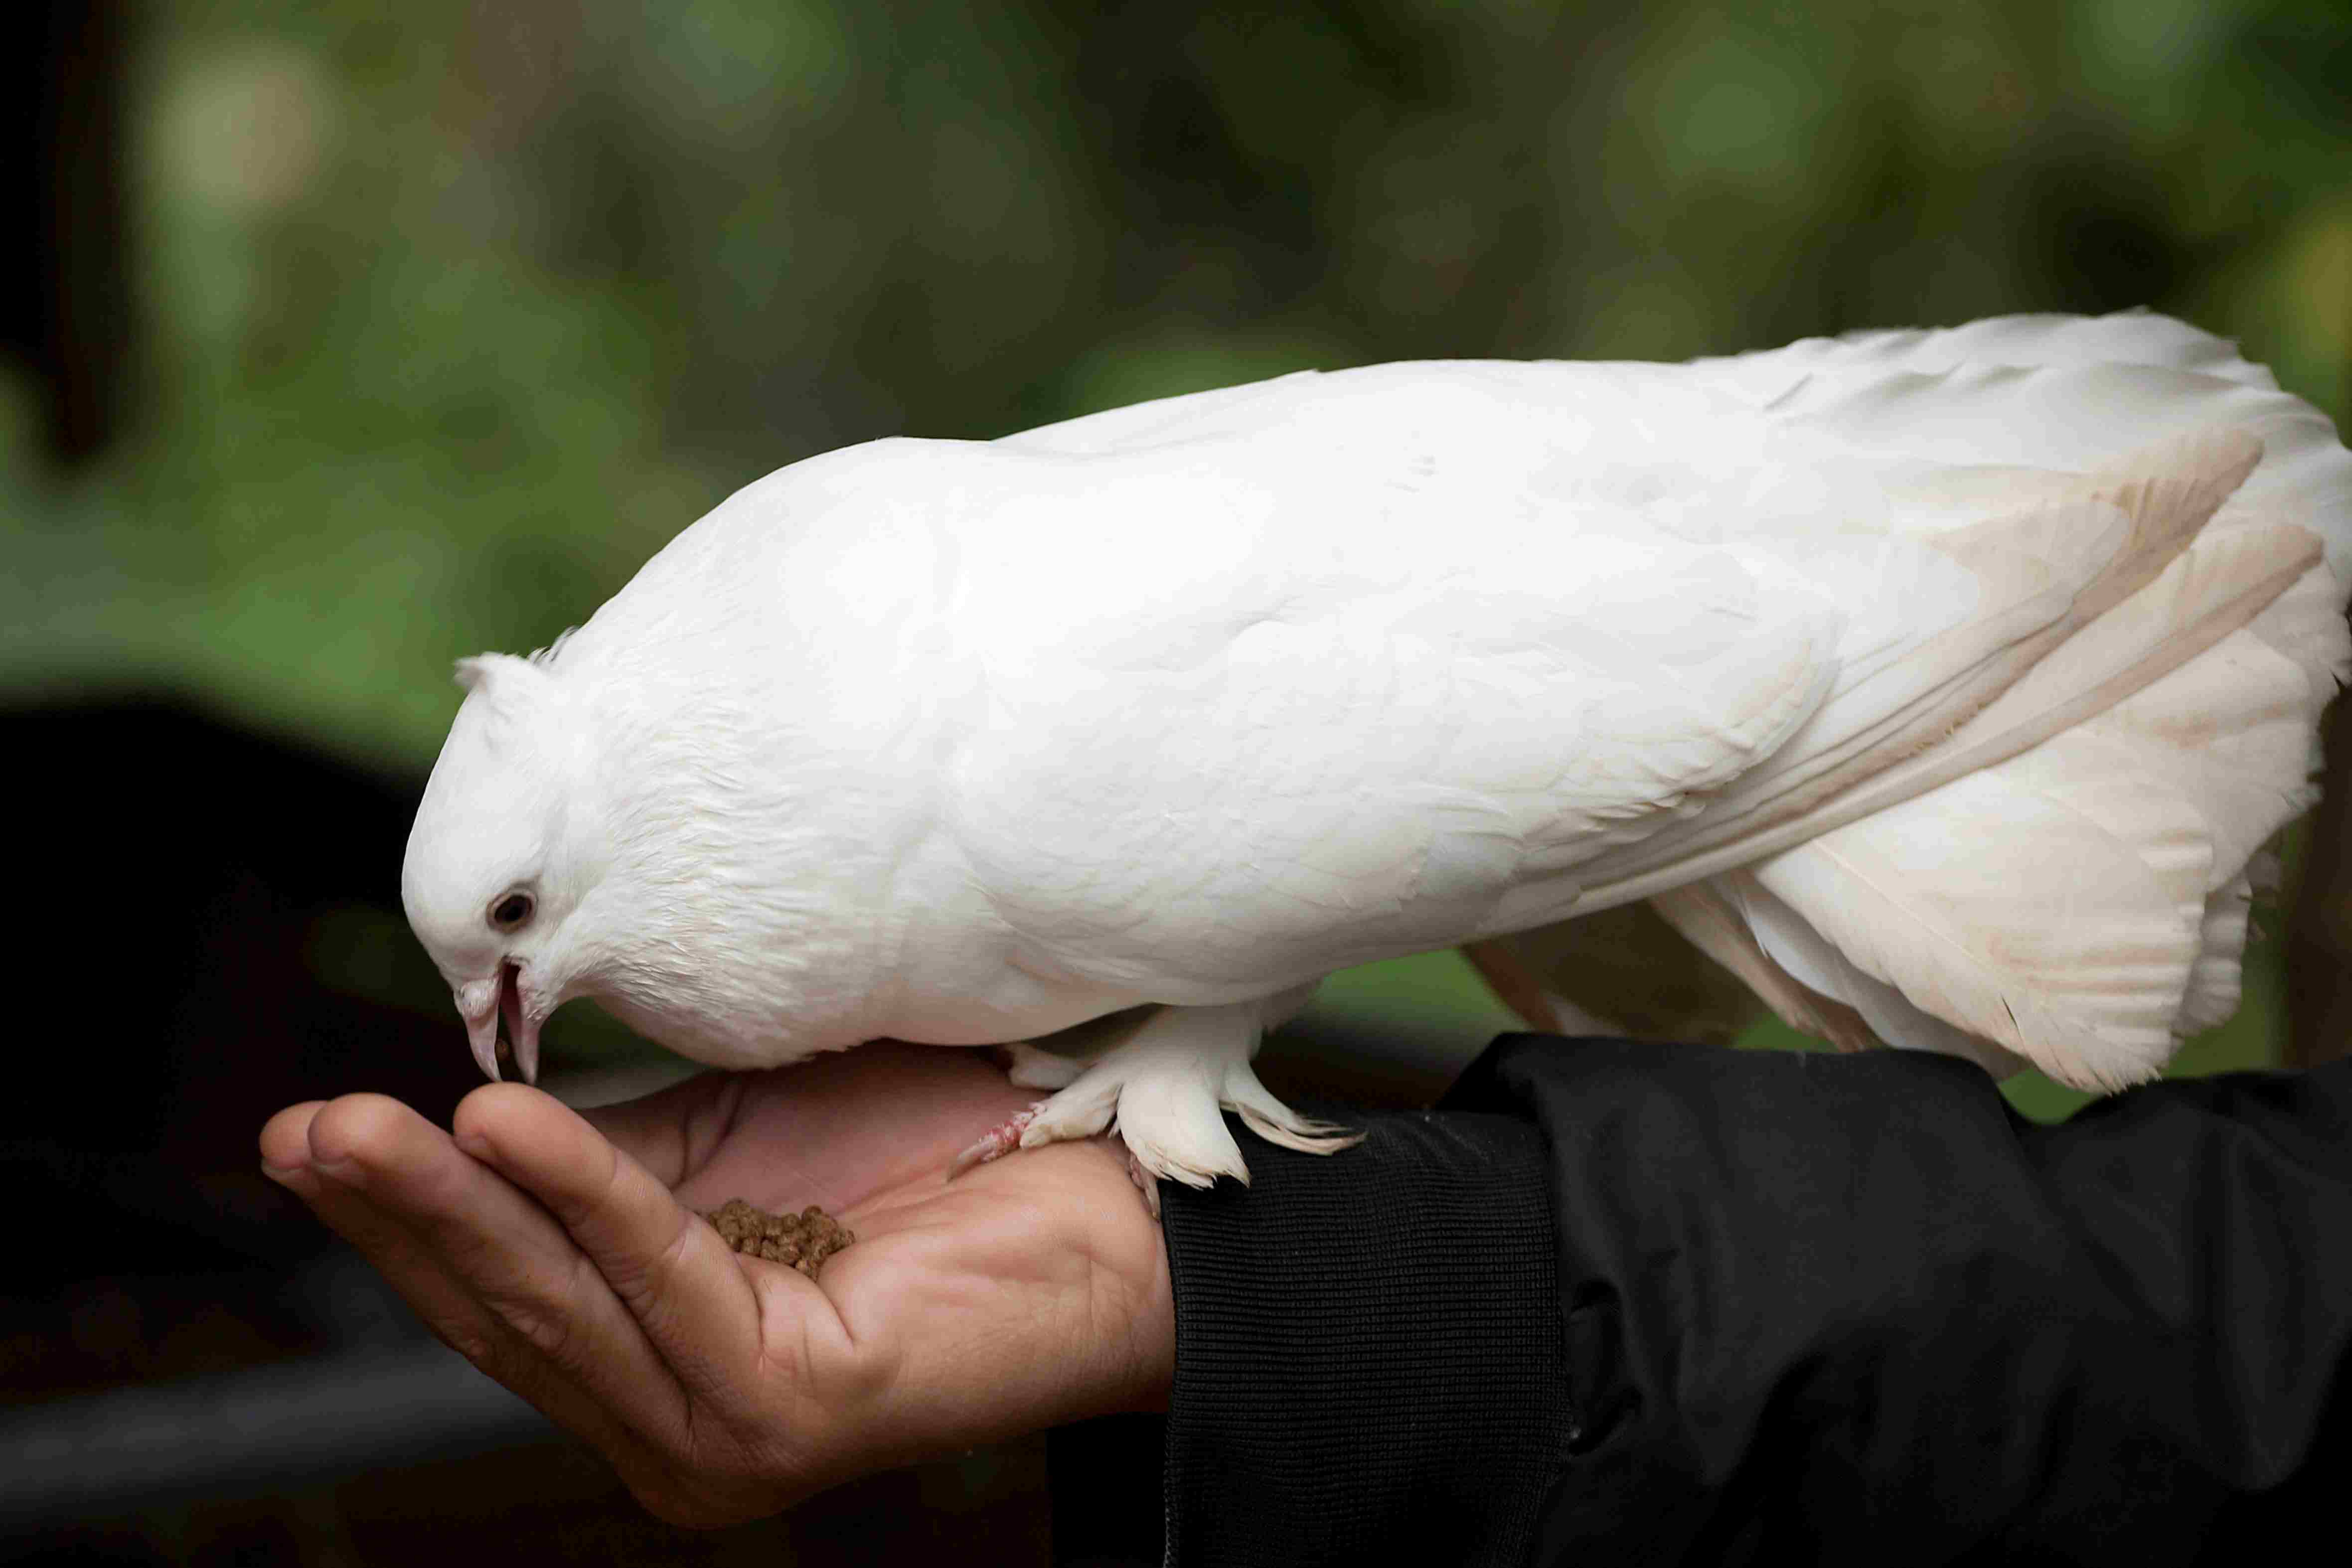 White dove eating out of a person's hand